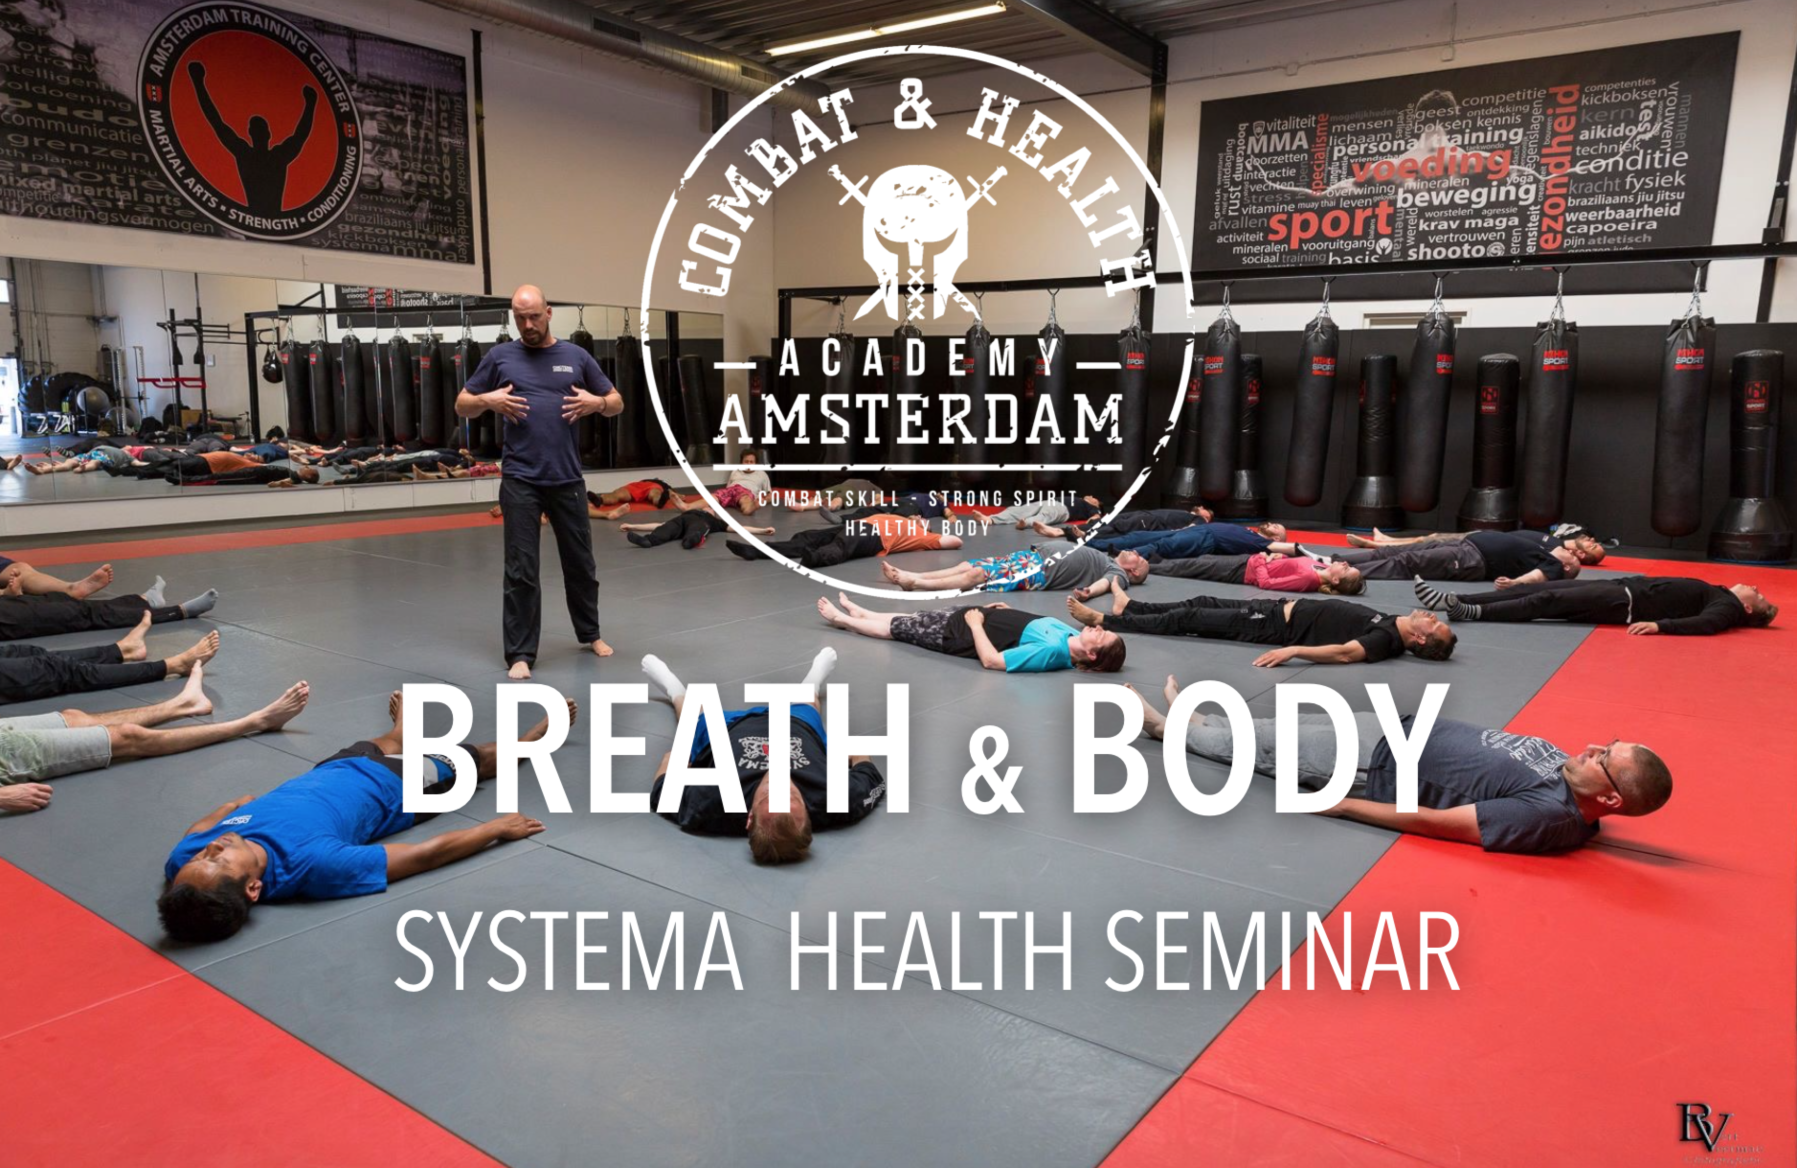 Breath & Body Systema Health Seminar